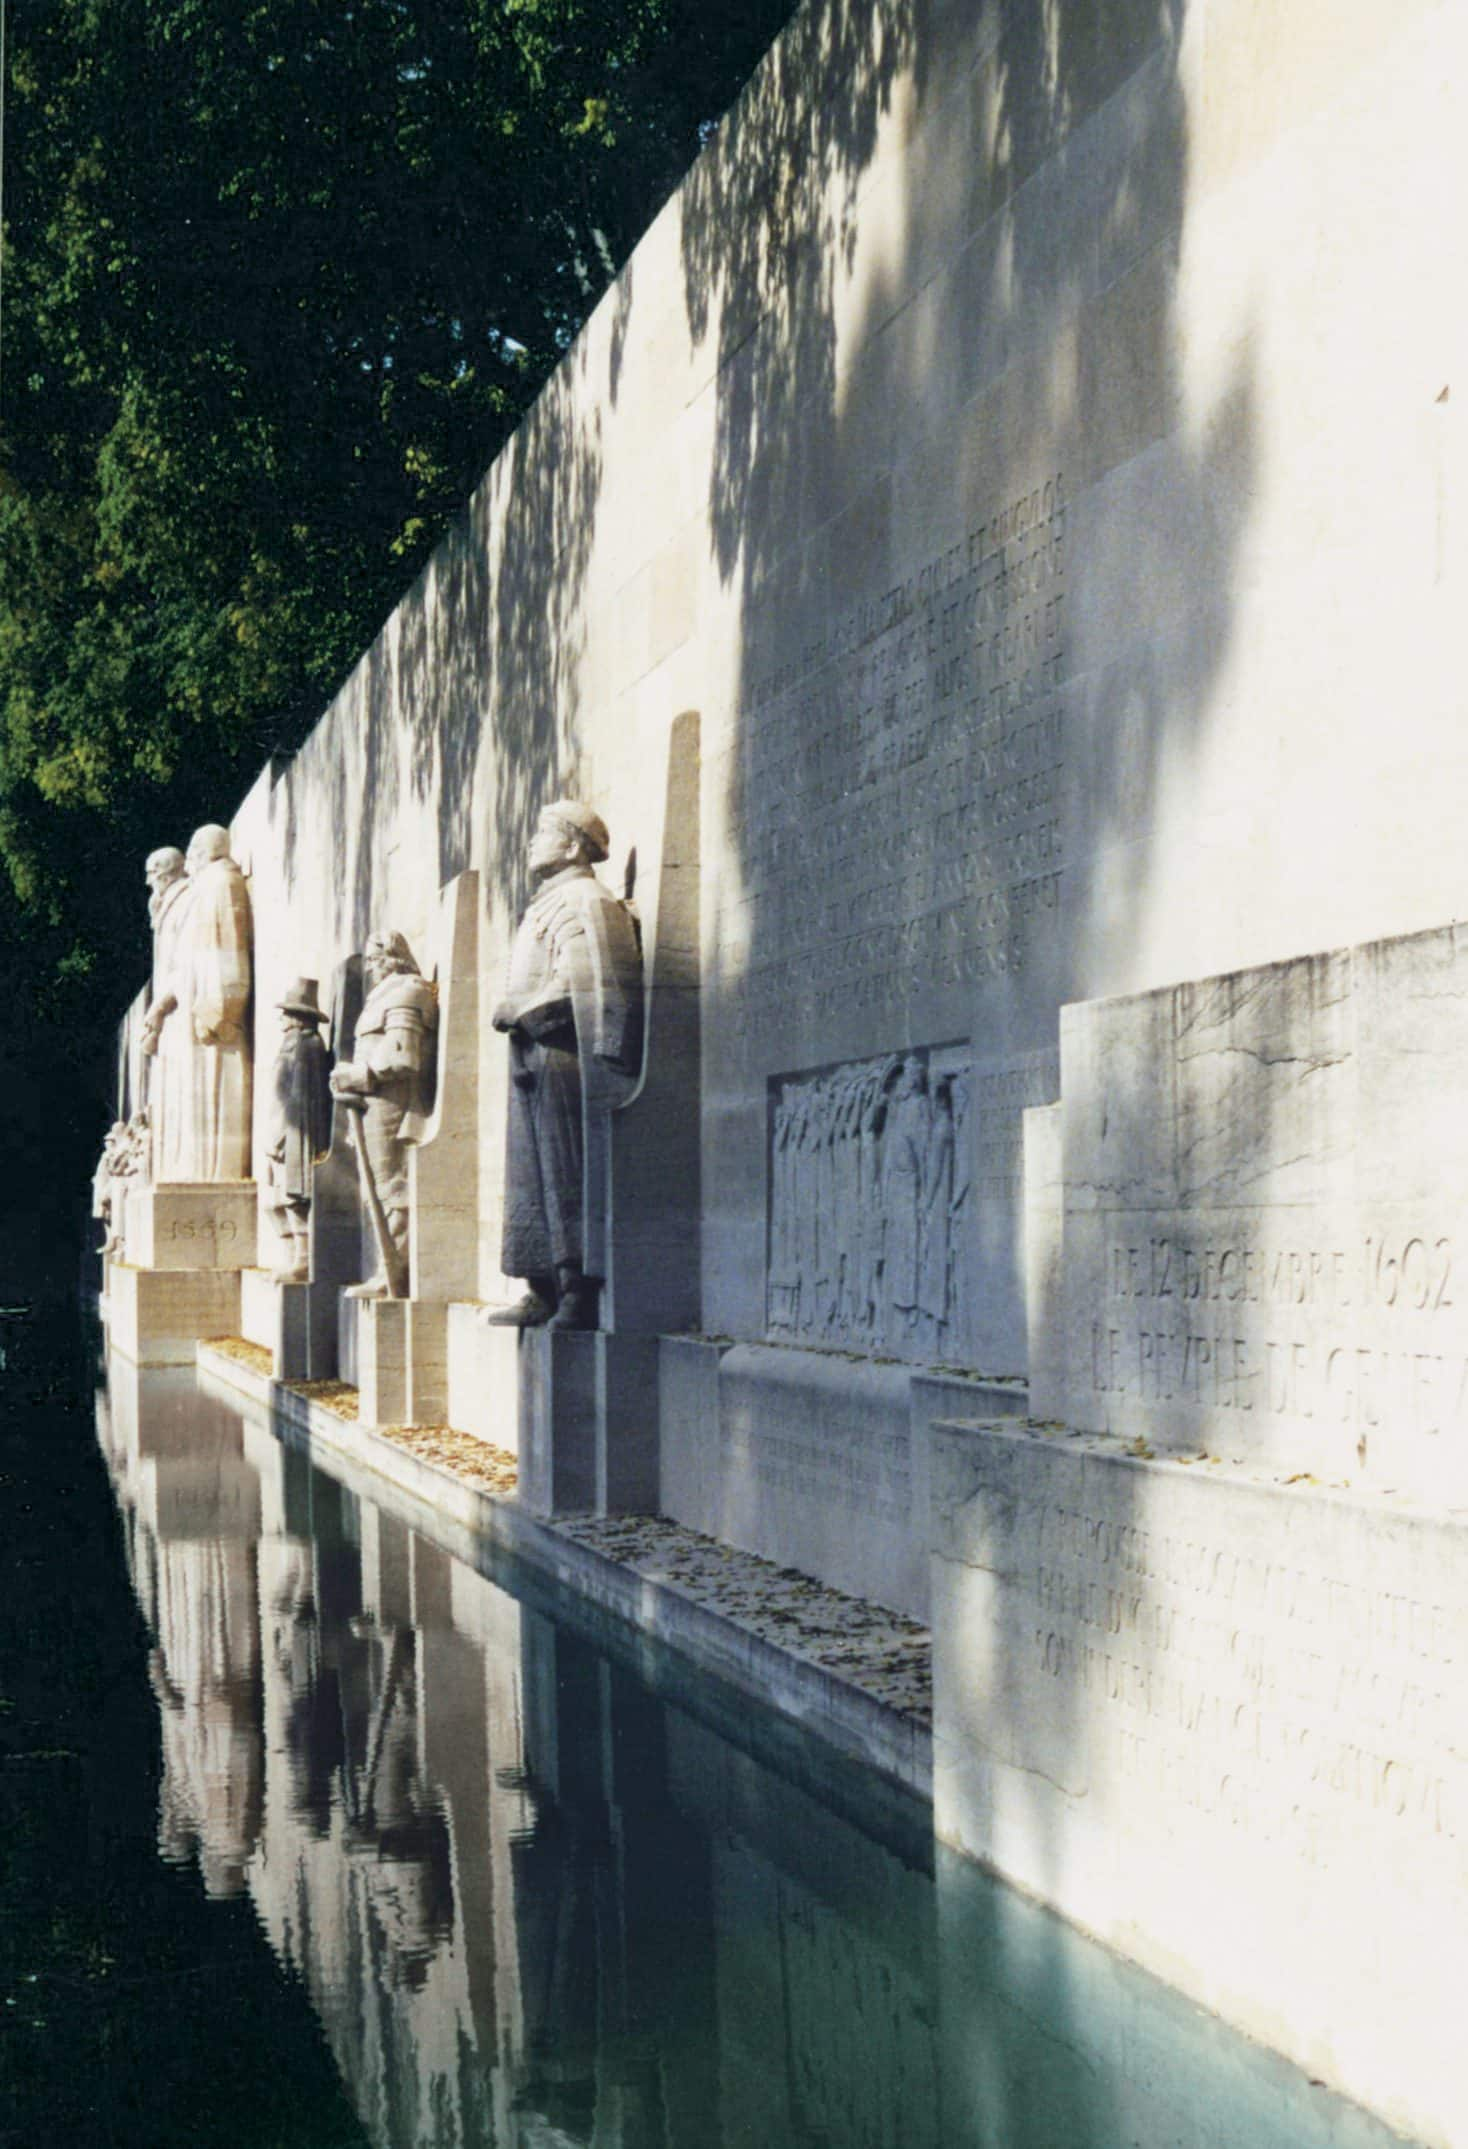 The Reformation Wall in the Parc des Bastions